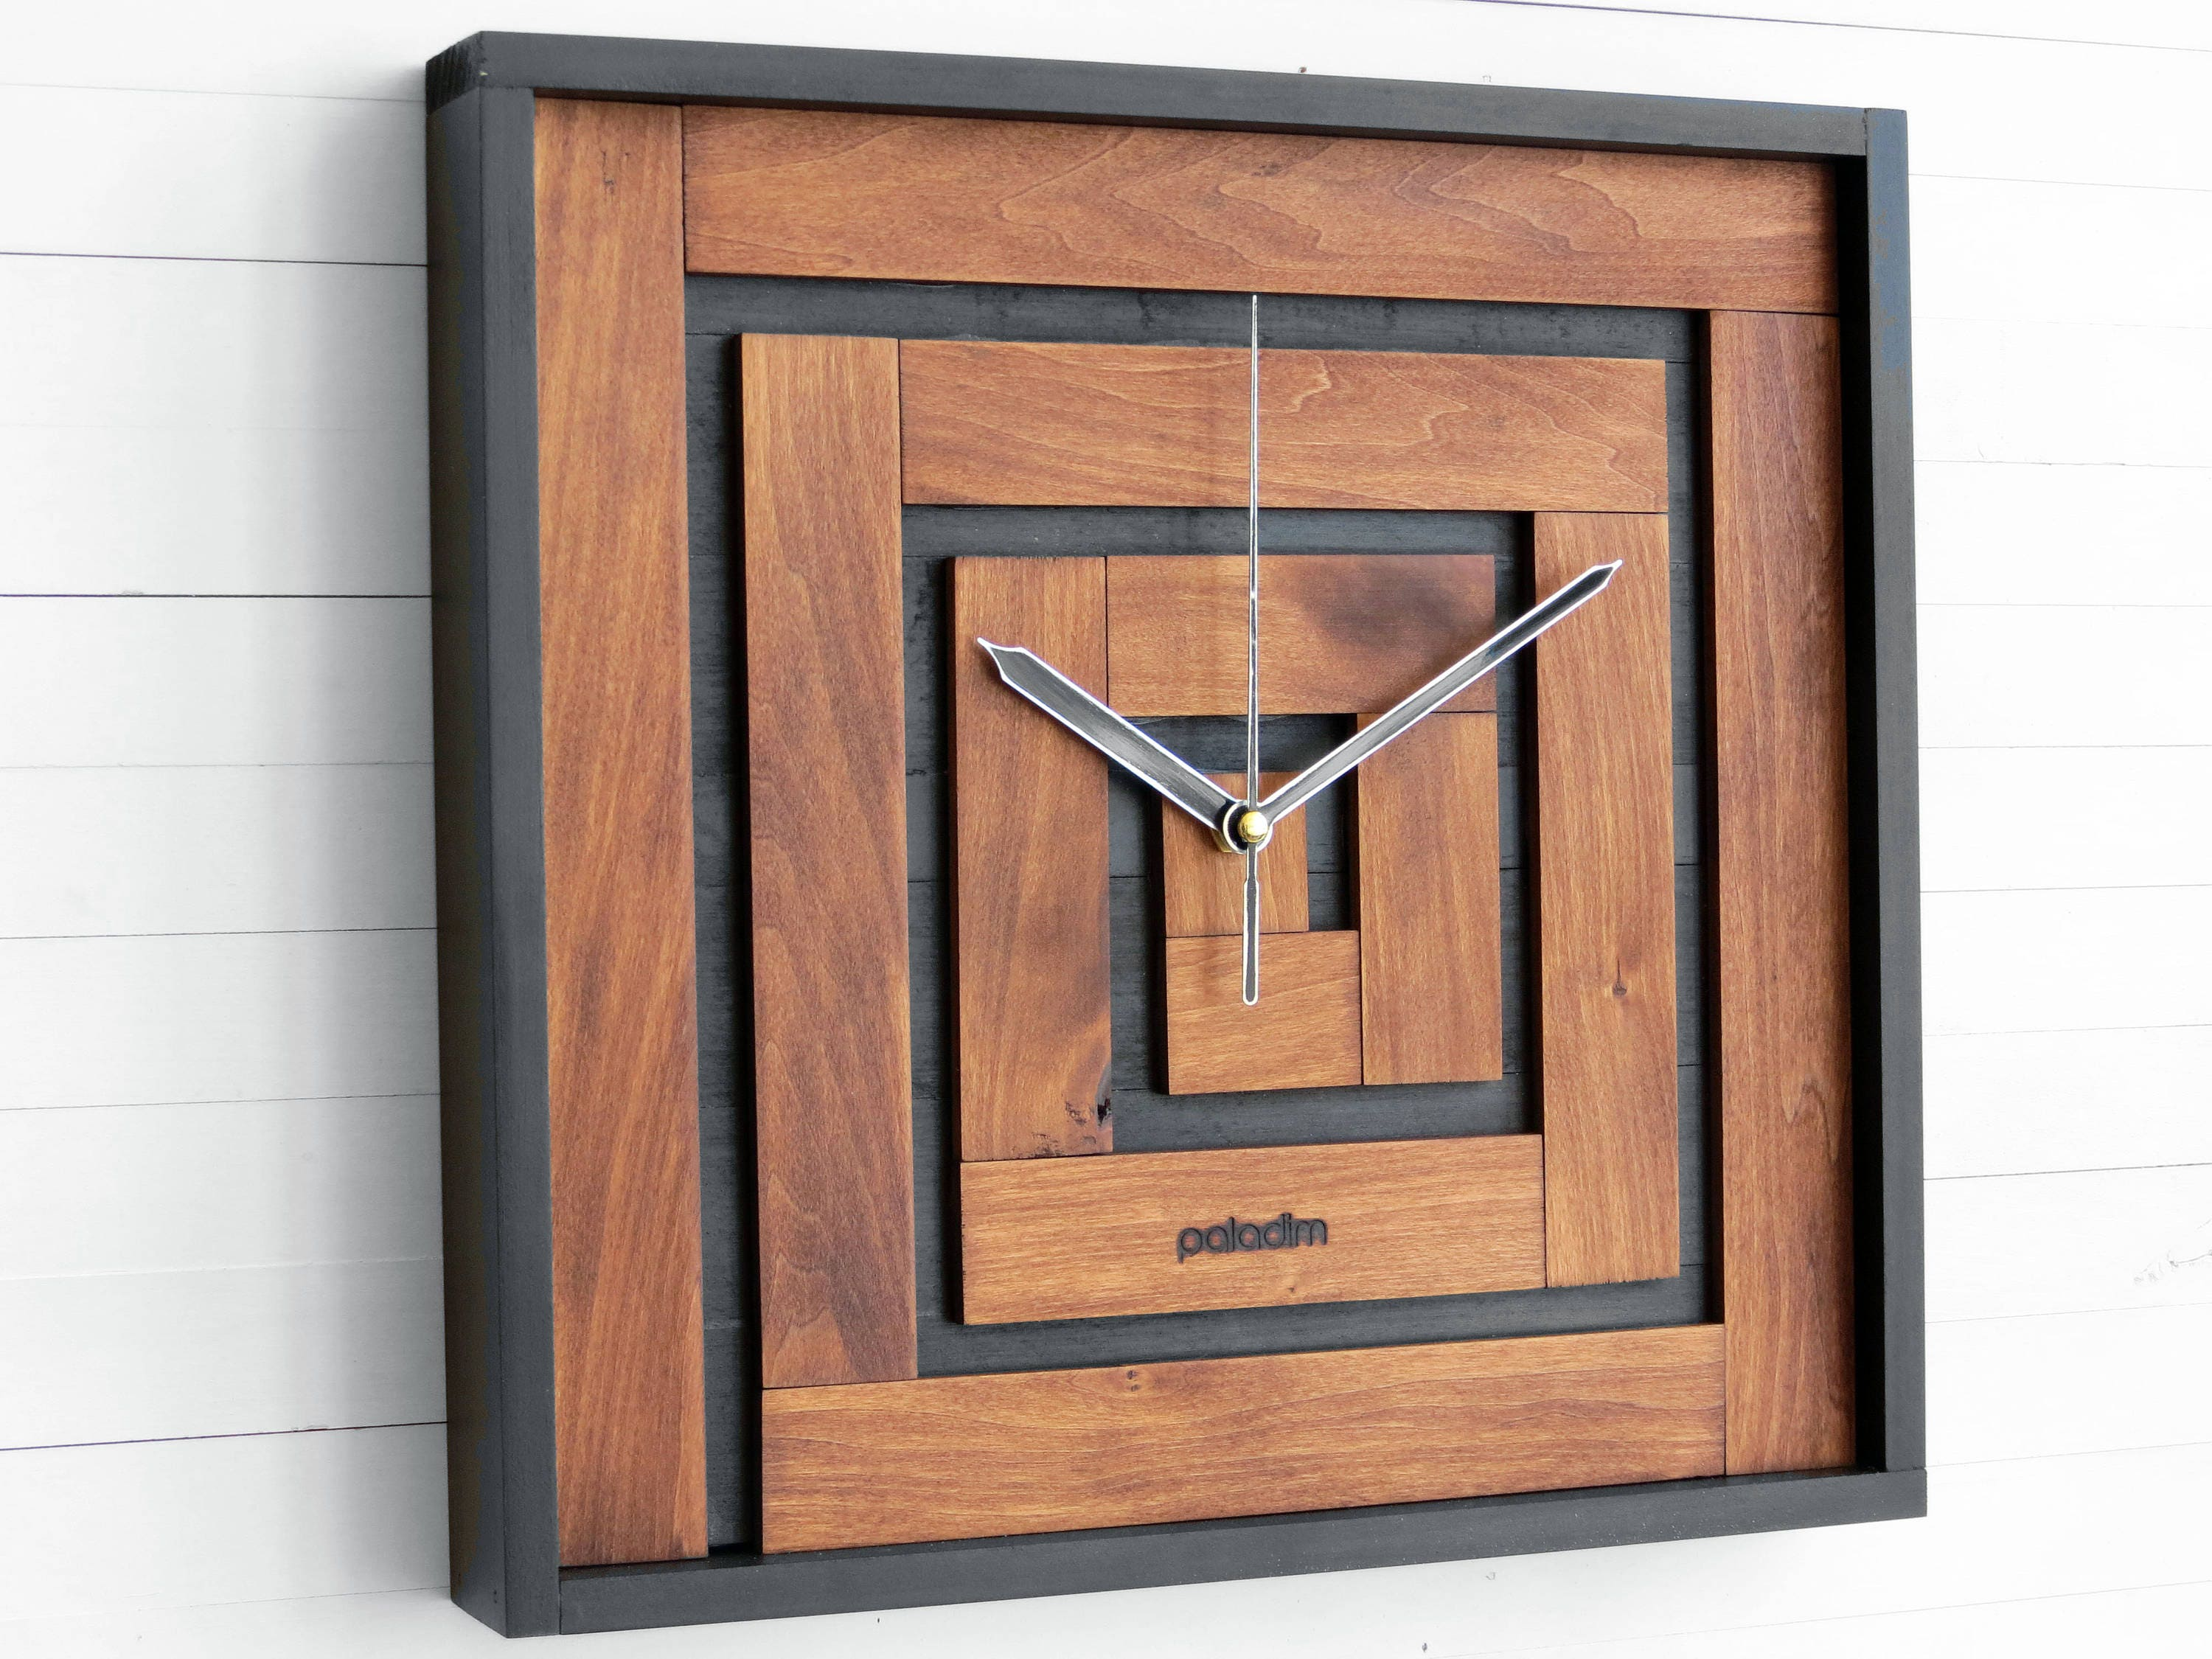 Wall clock thanksgiving gift square clock maze decor zoom amipublicfo Gallery